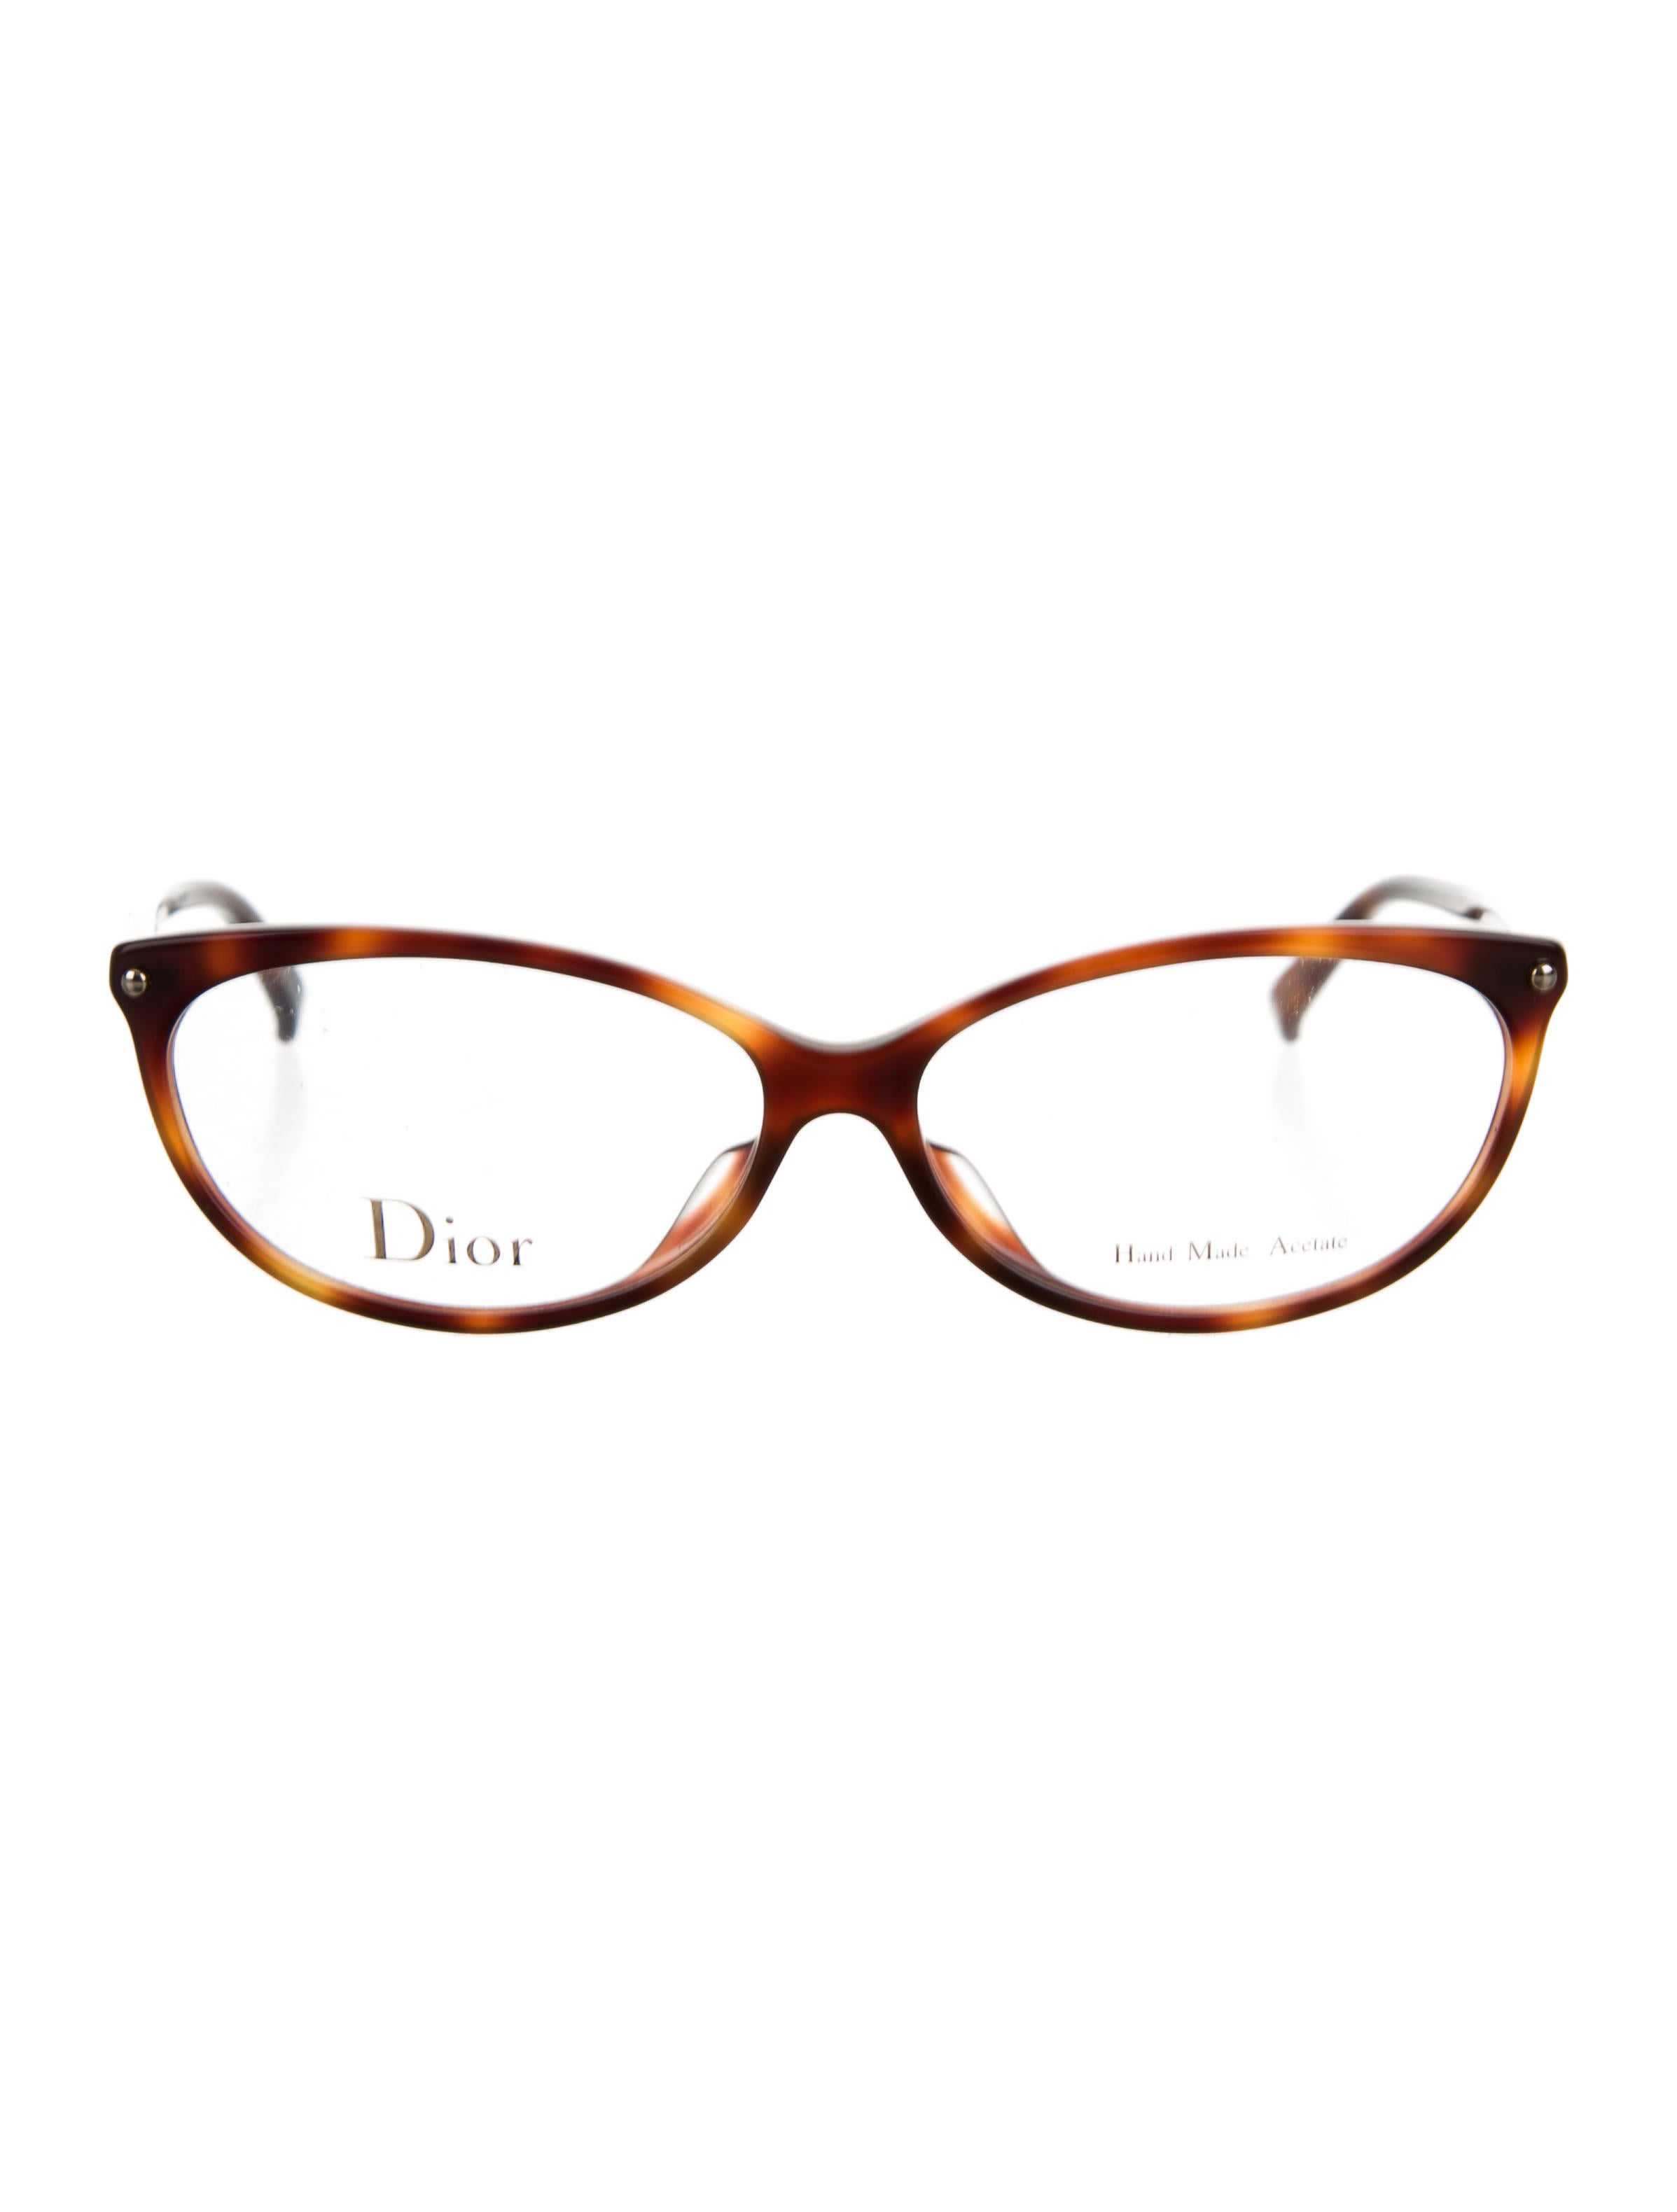 christian tortoiseshell logo eyeglasses accessories